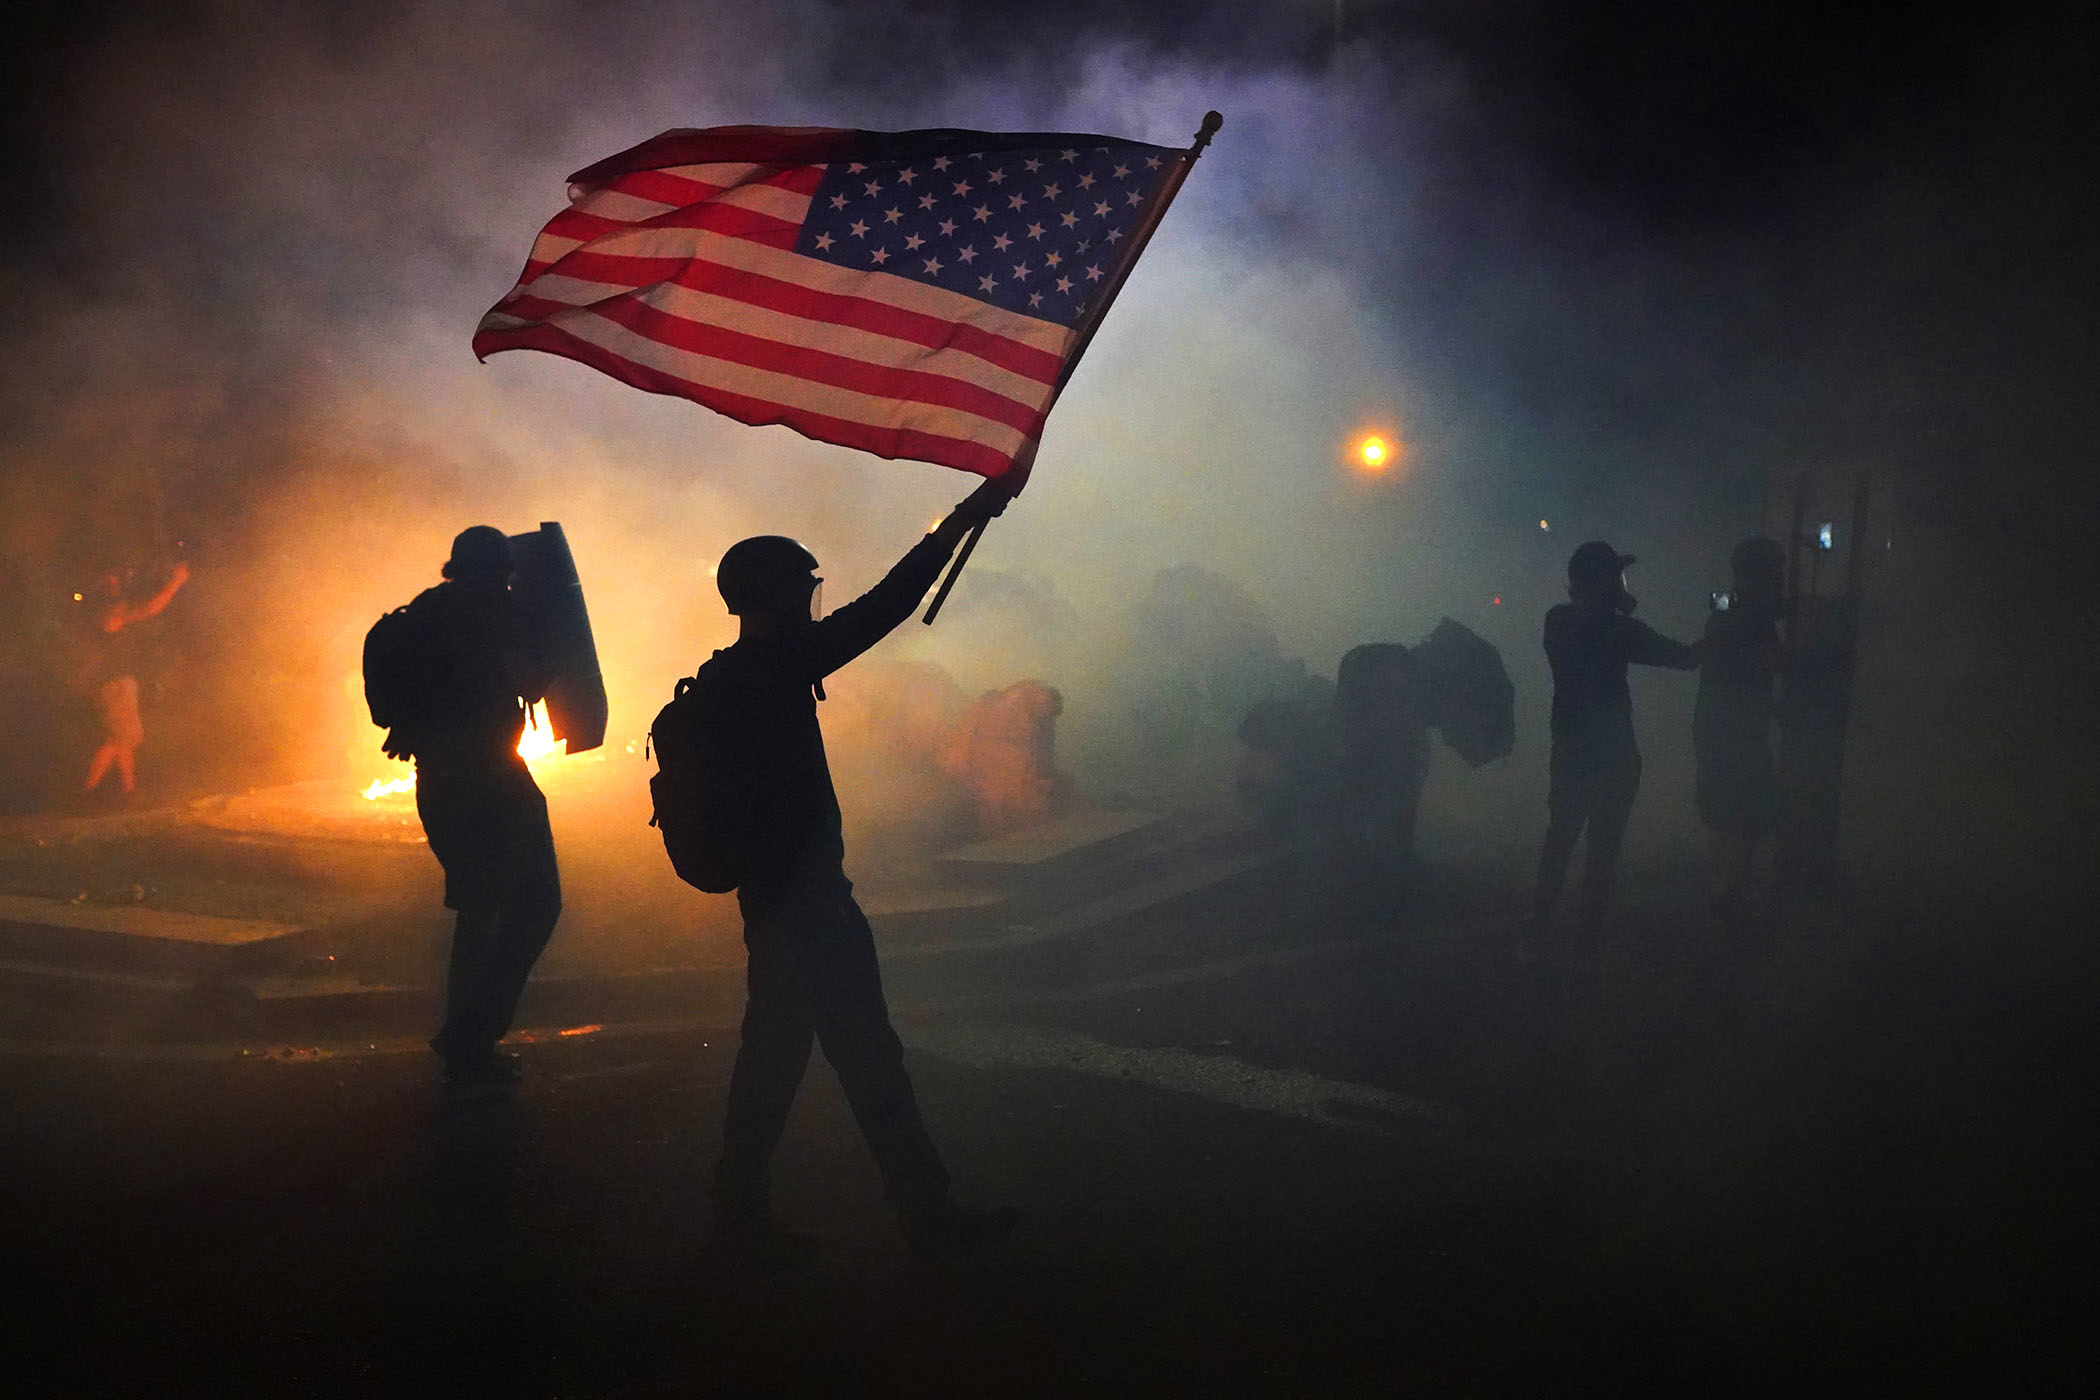 A demonstrator, backlit by a fire in the background, holds up a US flag amid clouds of tear gas